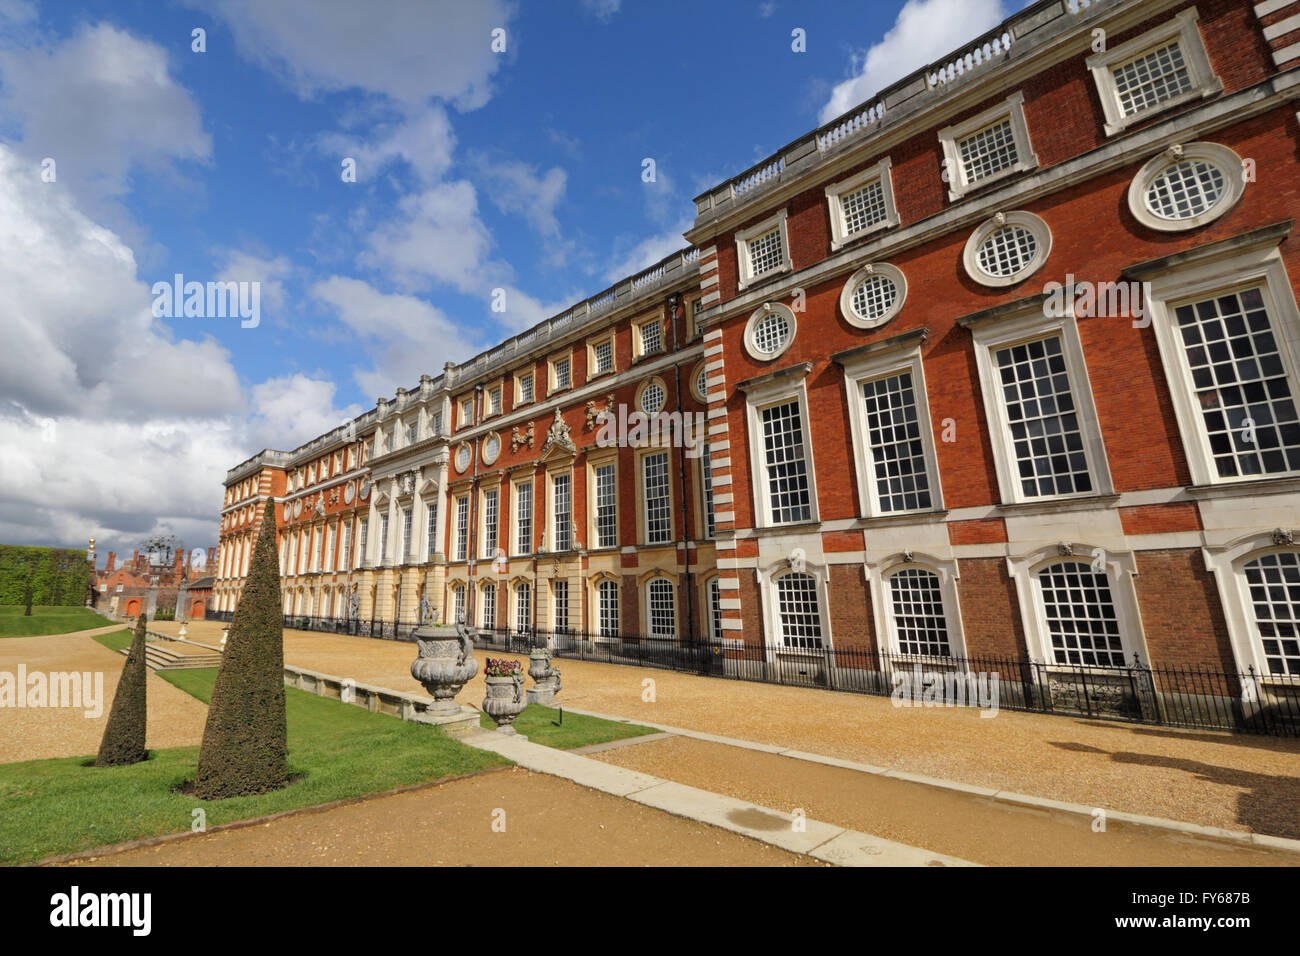 Hampton Court Palace, London, UK. 23rd April 2016. The beautifully designed privvy garden and the southern facade - Stock Image